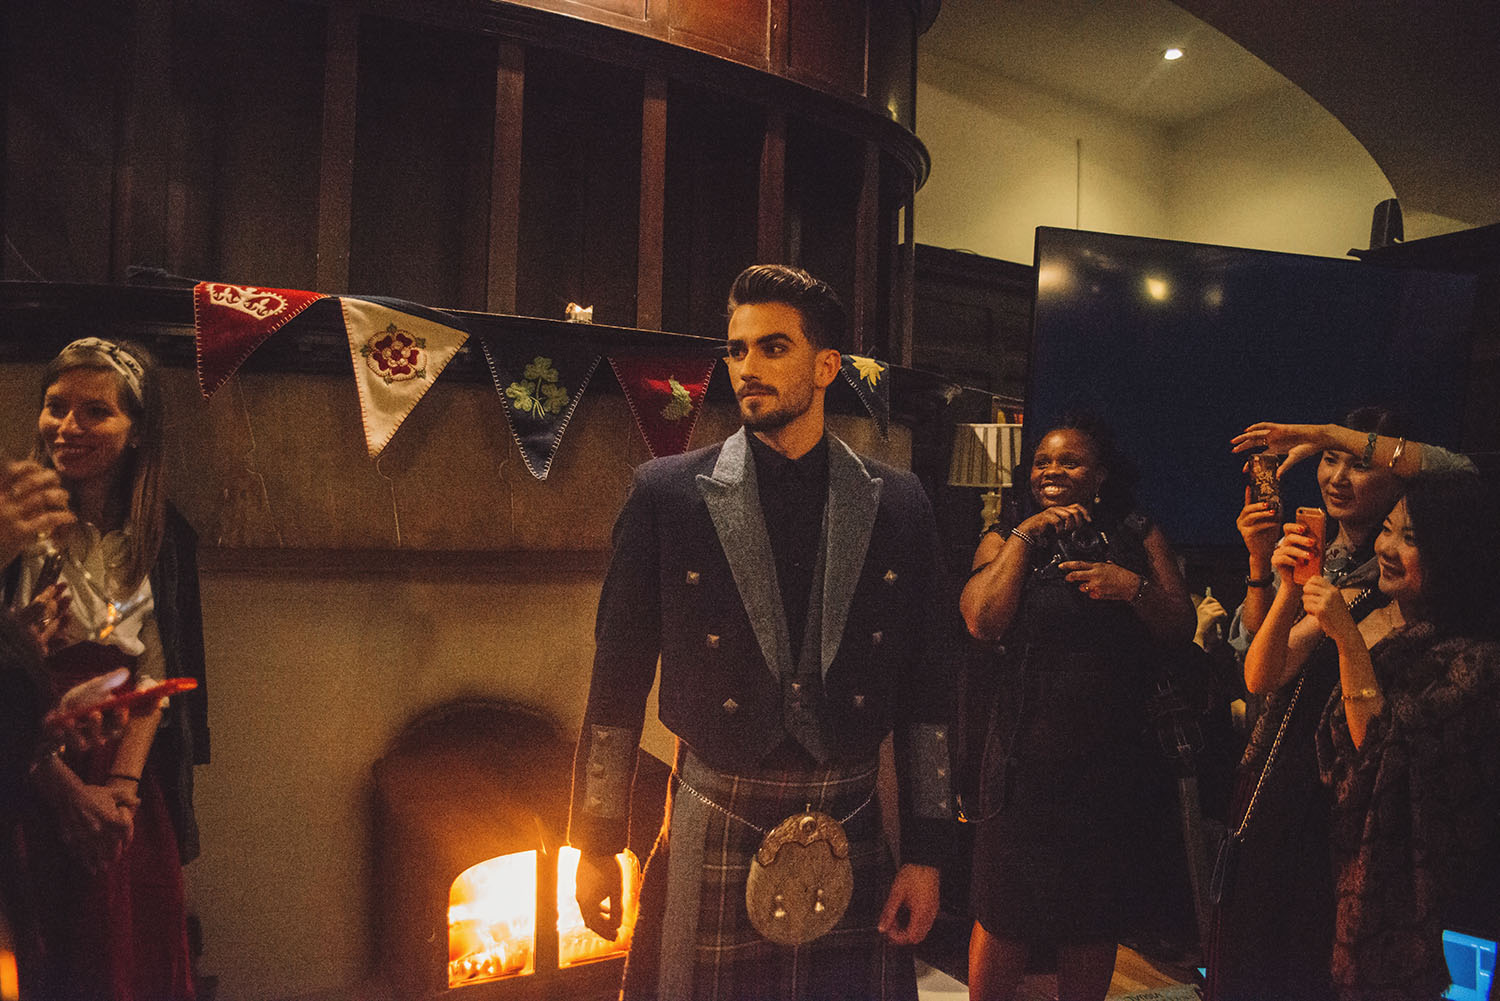 Siobhan Mackenzie Scottish Fashion Show with hot male model wearing kilt